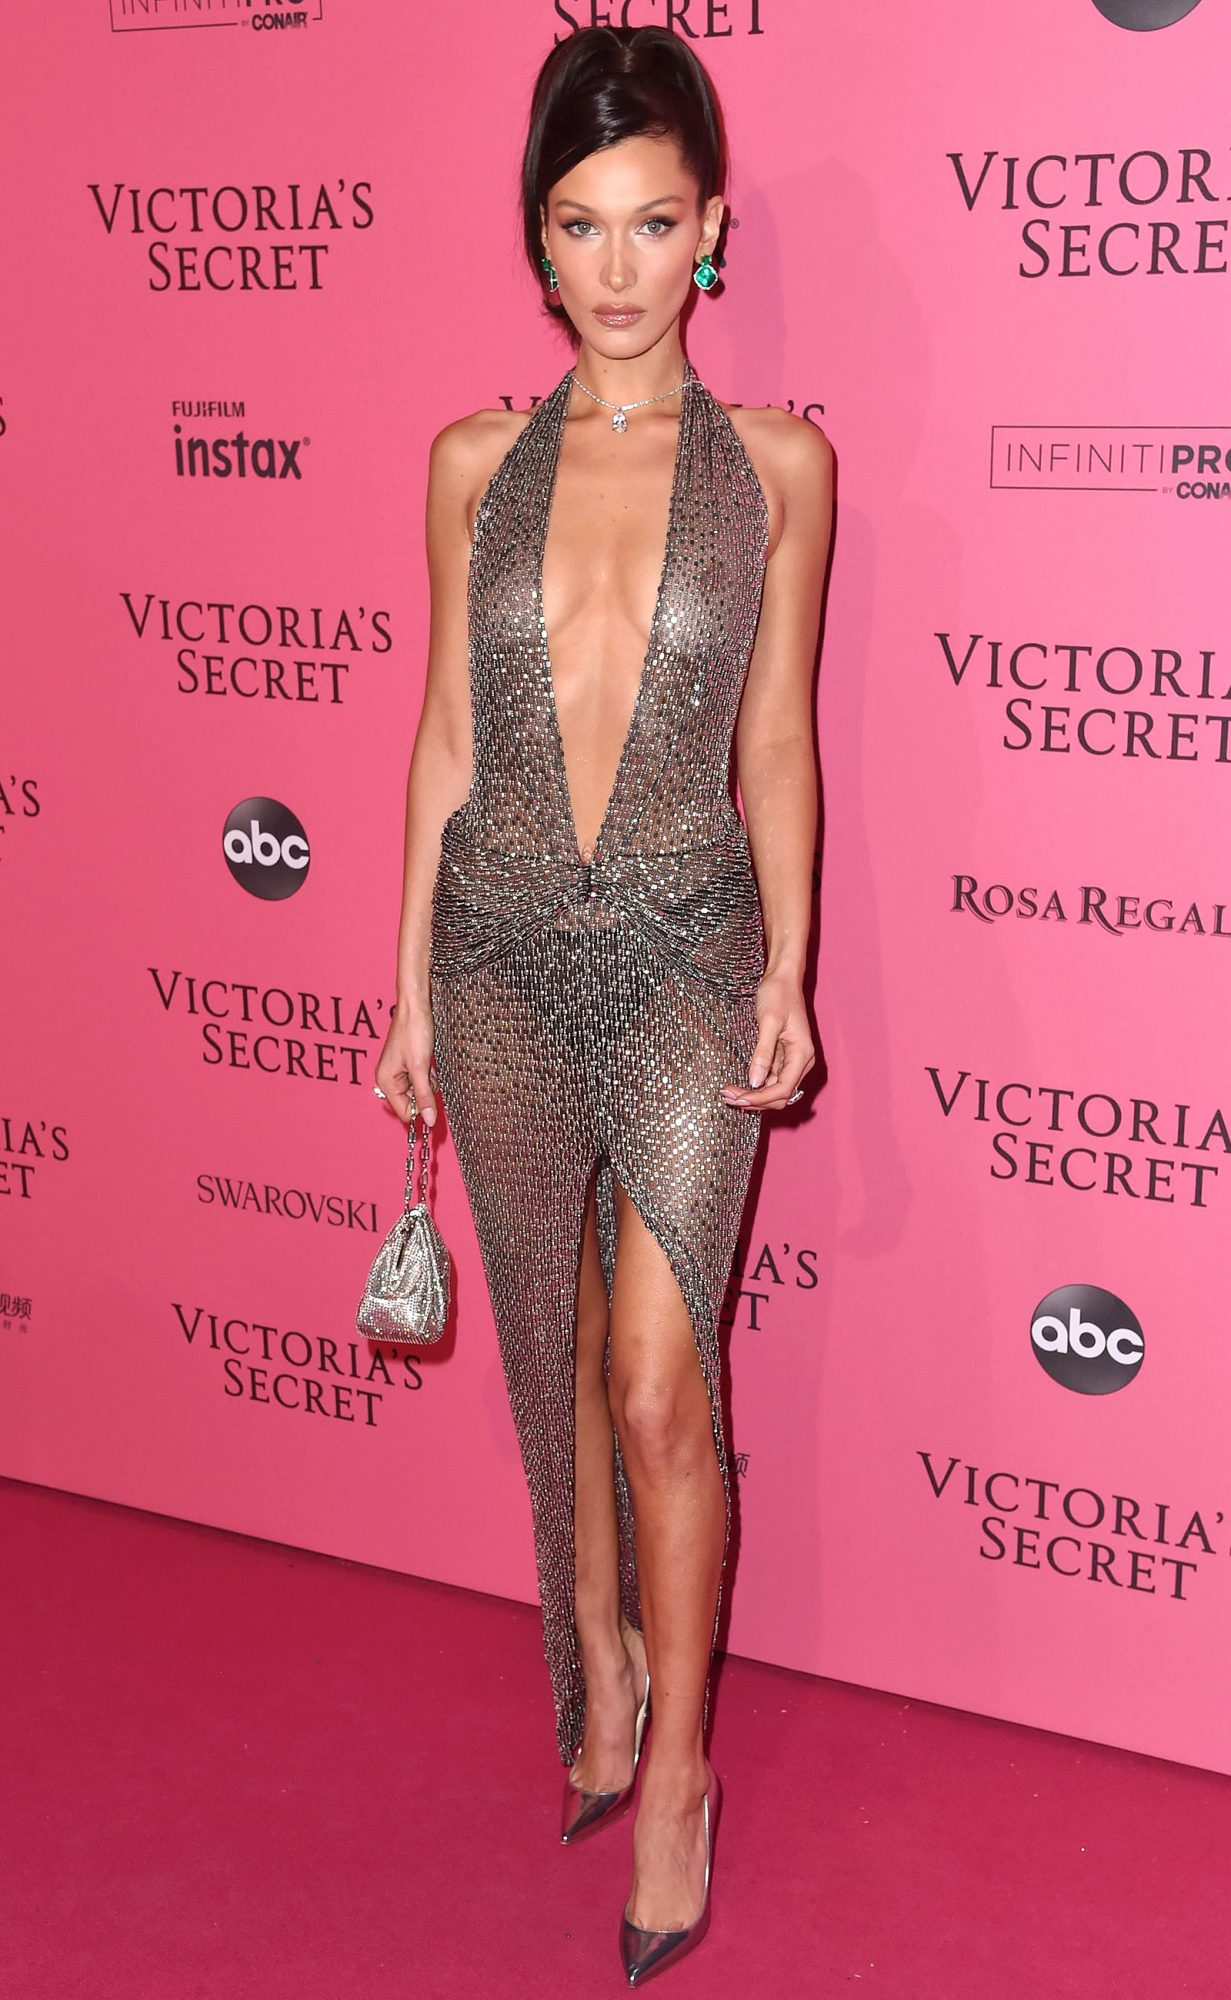 Red Carpet bling Bella Hadid Wears A Silver See Through Long Gown with Deep Plunging Neckline and High Slit